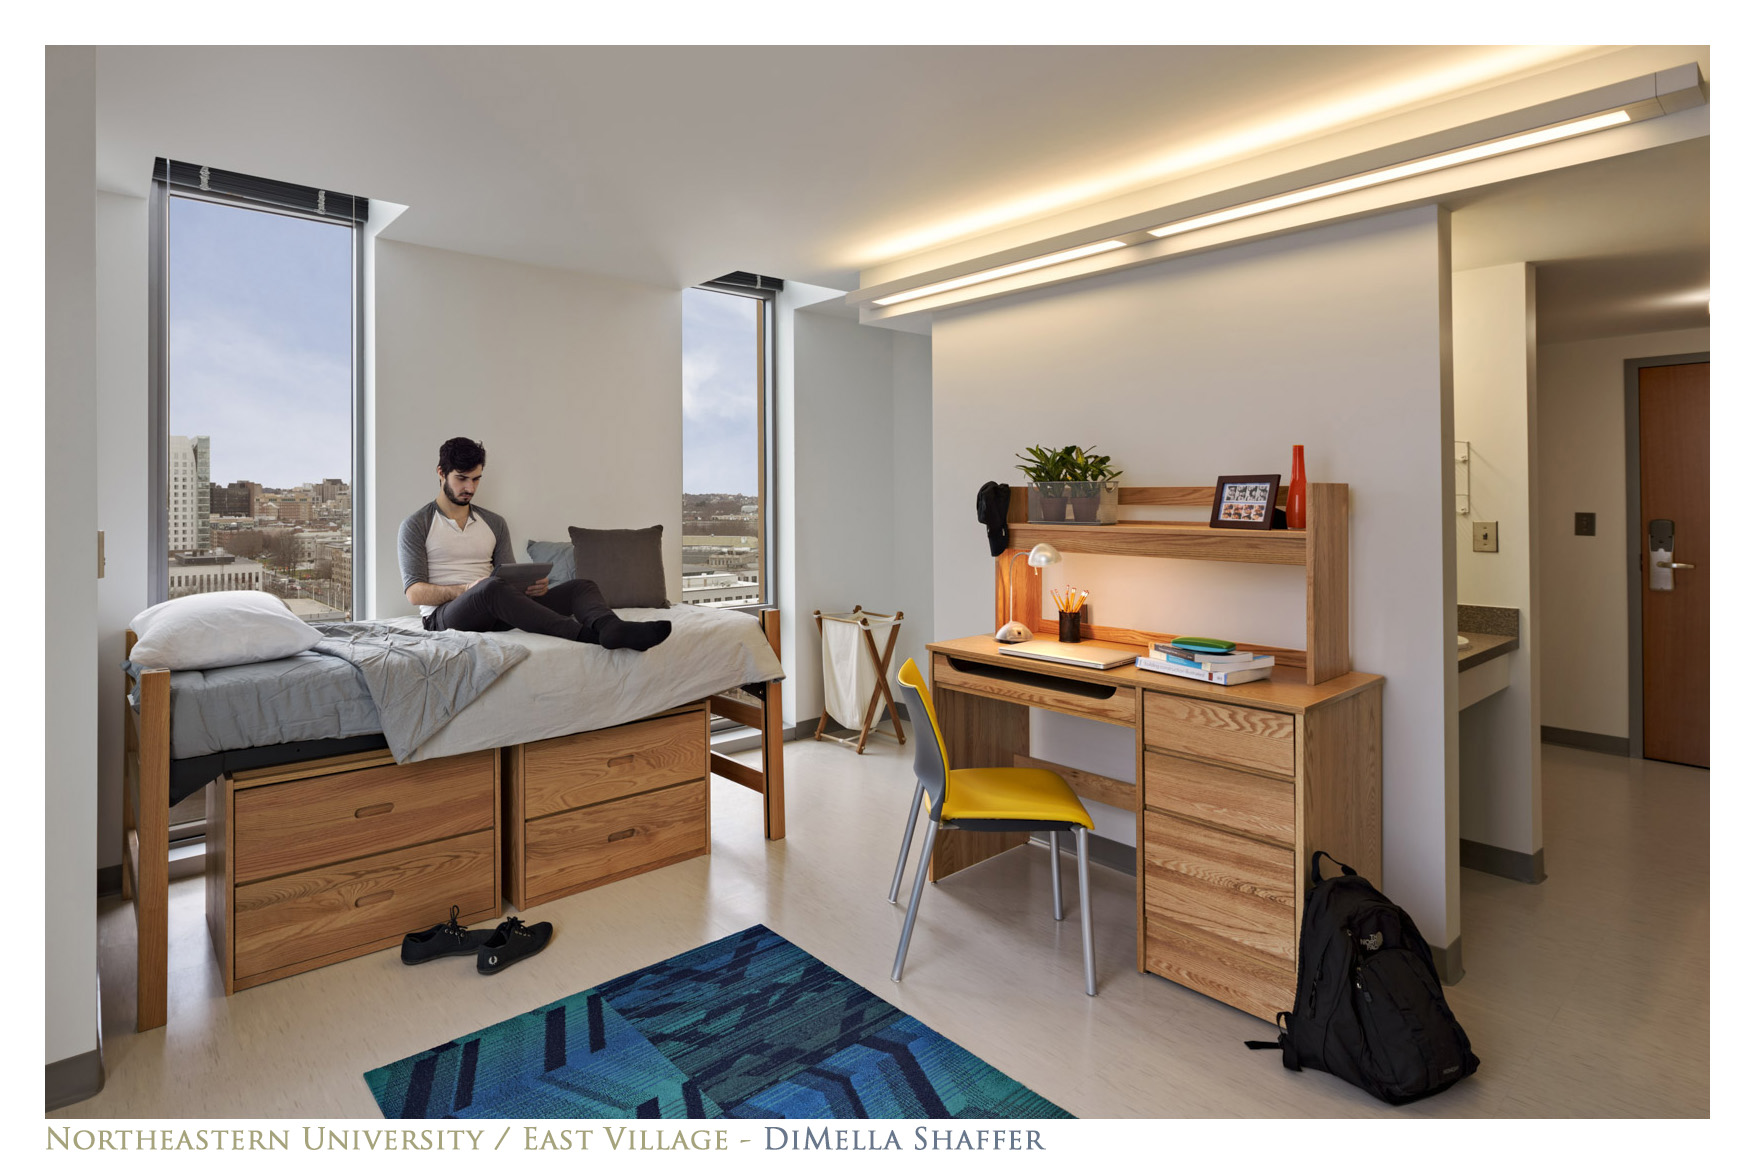 024_Robert-Benson-Photography-DiMella-Shaffer-Northeastern-University-East-Village-Student-Housing-Dormatory-Architectural-Photography-02a.JPG